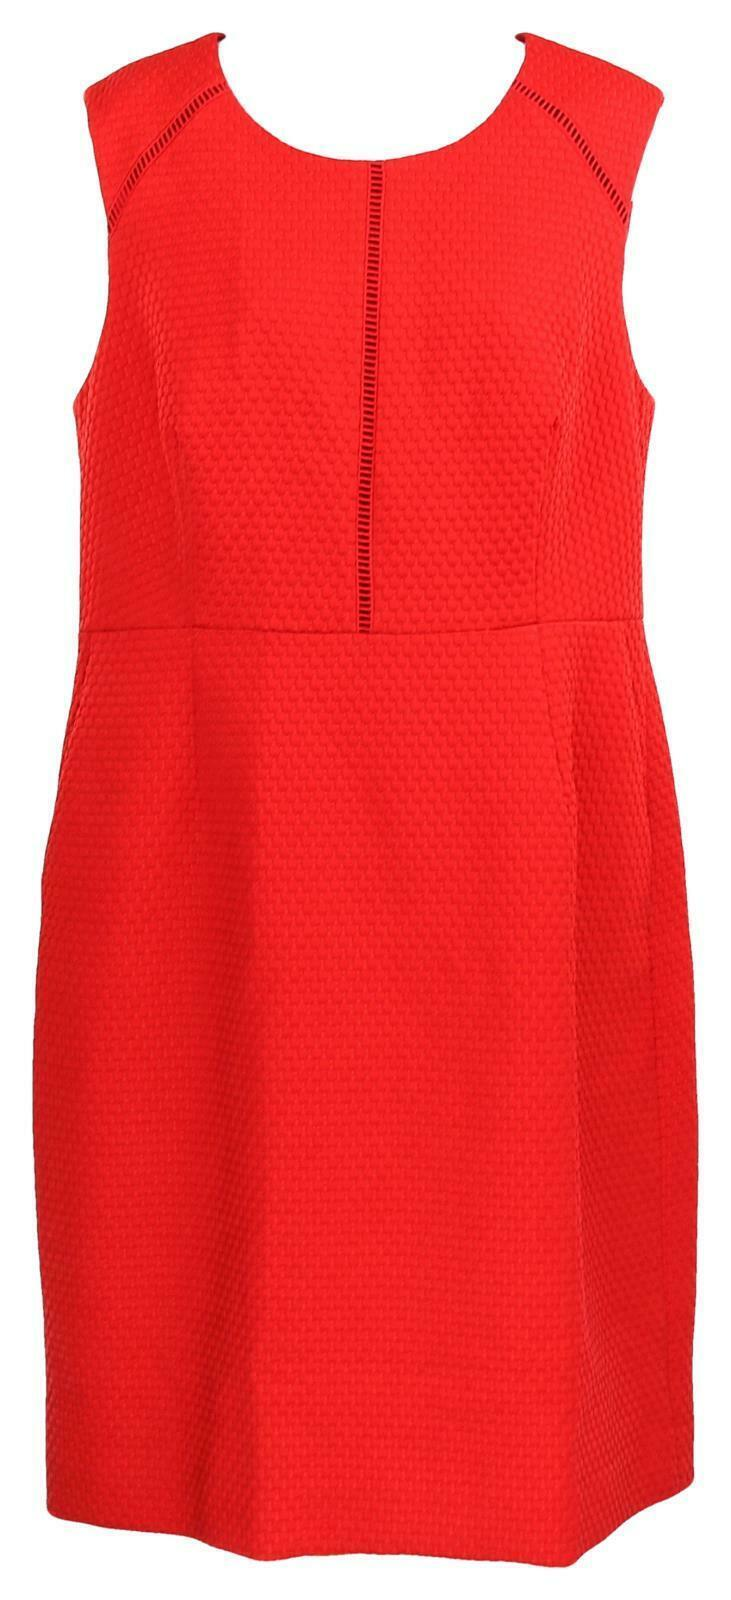 Primary image for J Crew Women's Portfolio Sheath Dress /Suiting Career Work Red  12 F0791